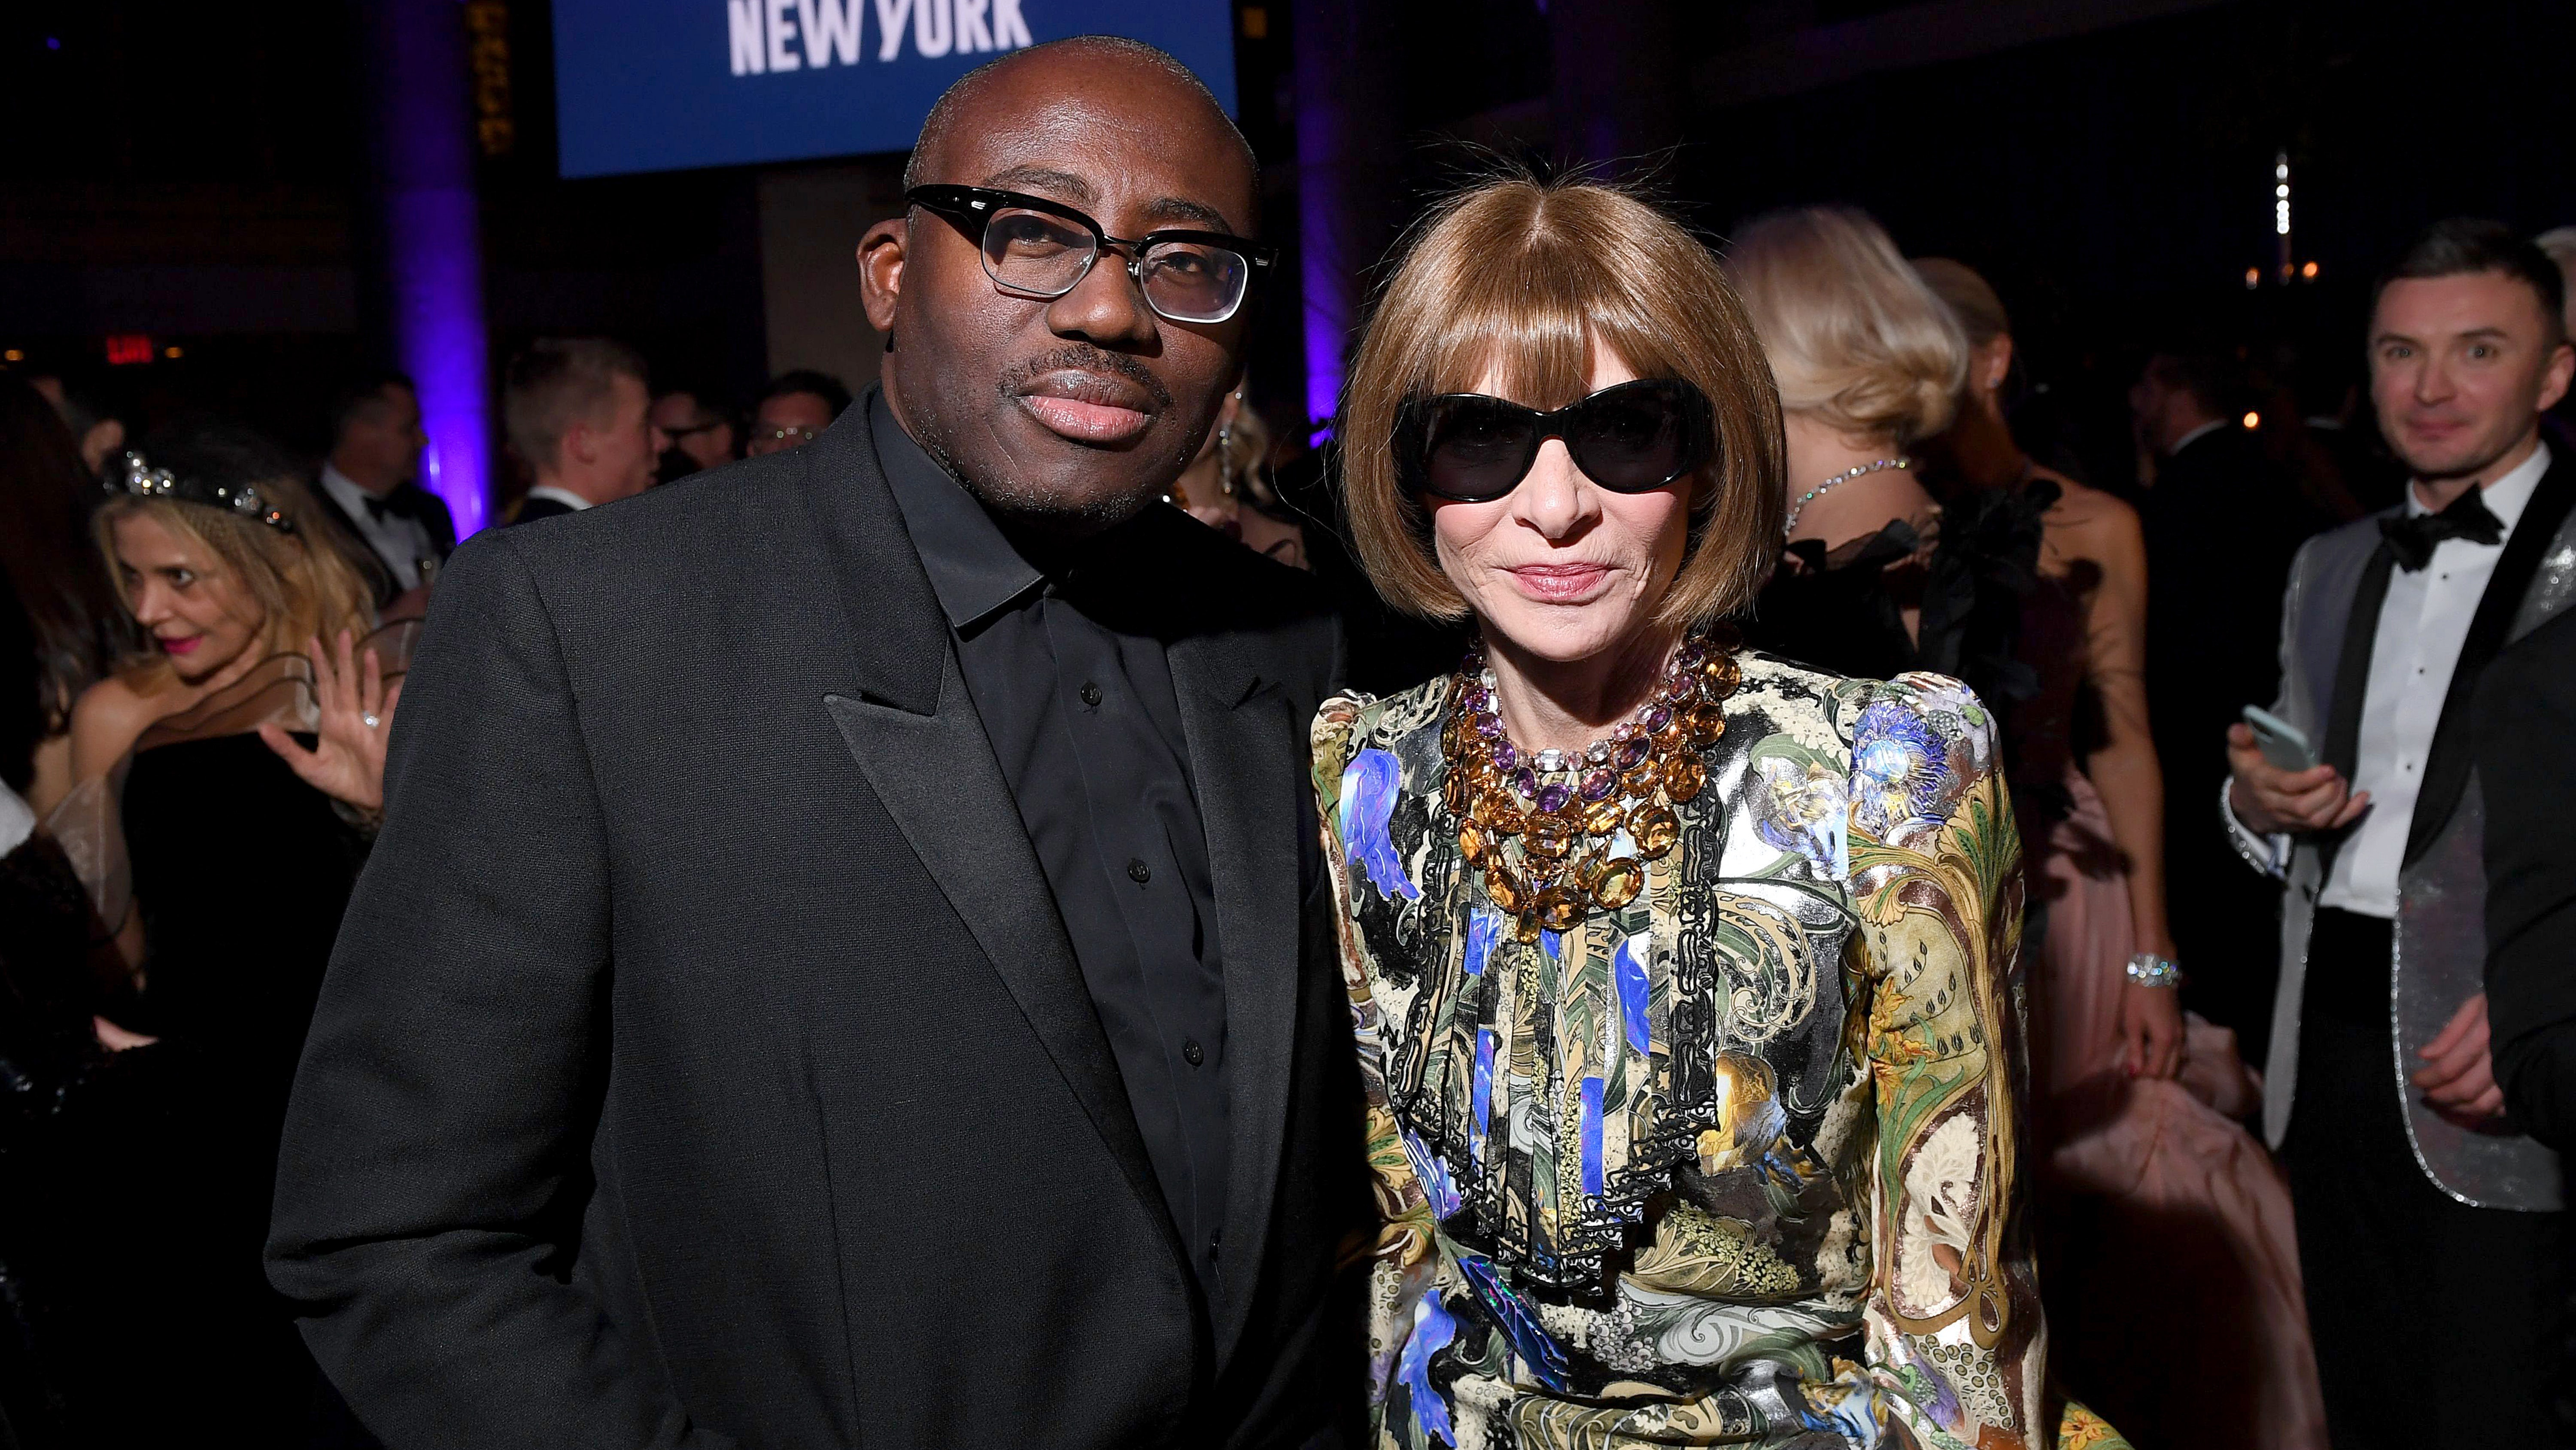 British Vogue editor Edward Enninful and American Vogue editor Anna Wintour have new global responsibilities at Condé Nast. Getty Images.